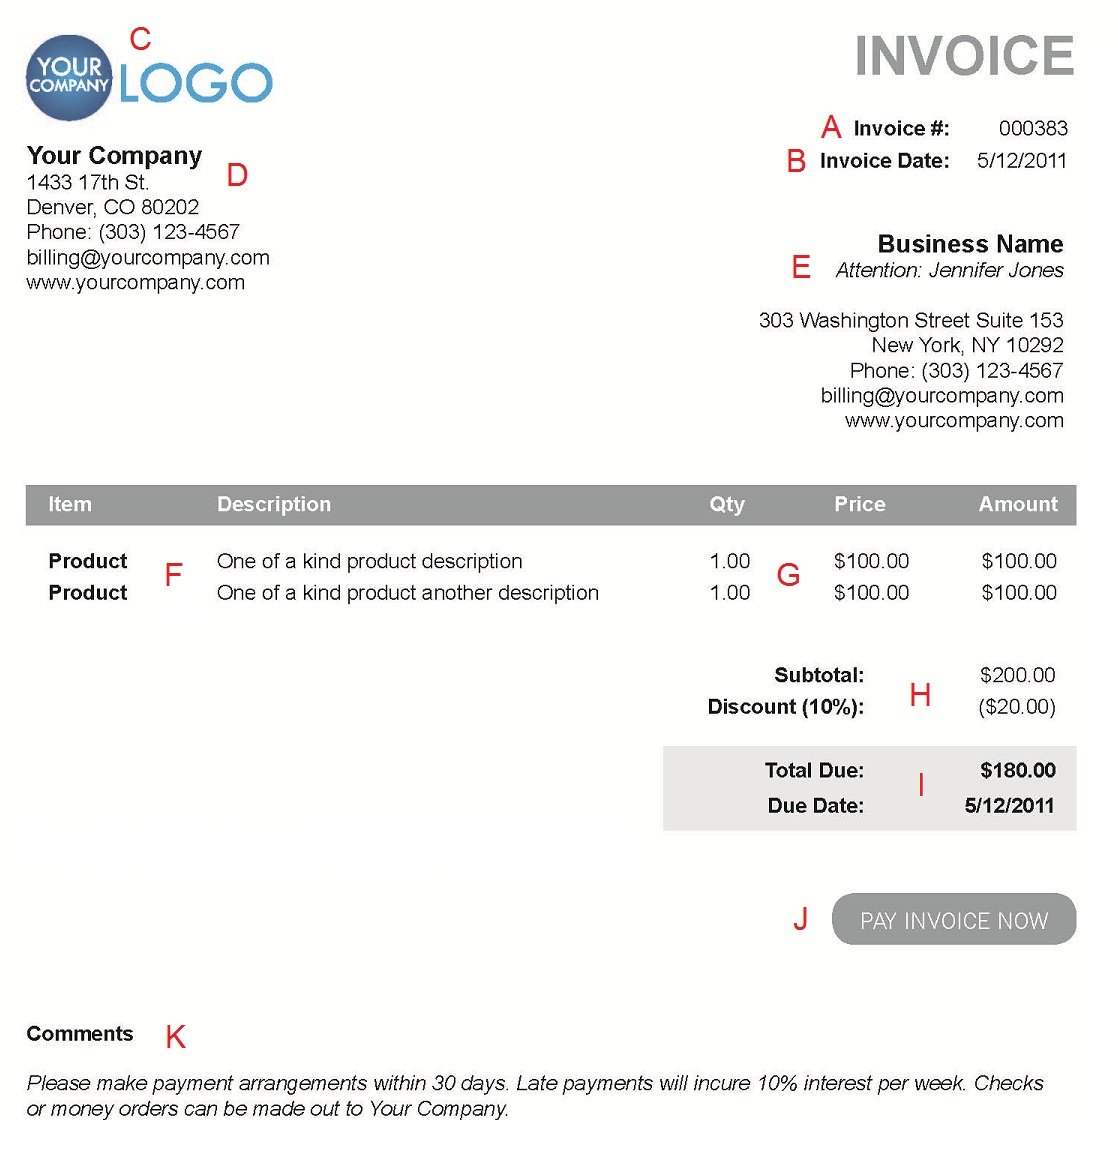 Hucareus  Gorgeous The  Different Sections Of An Electronic Payment Invoice With Glamorous A  With Agreeable Generic Invoices Also Invoice Number Definition In Addition Invoice Factoring For Small Business And Ups Invoices As Well As Google Templates Invoice Additionally Free Hvac Invoice Template From Paysimplecom With Hucareus  Glamorous The  Different Sections Of An Electronic Payment Invoice With Agreeable A  And Gorgeous Generic Invoices Also Invoice Number Definition In Addition Invoice Factoring For Small Business From Paysimplecom